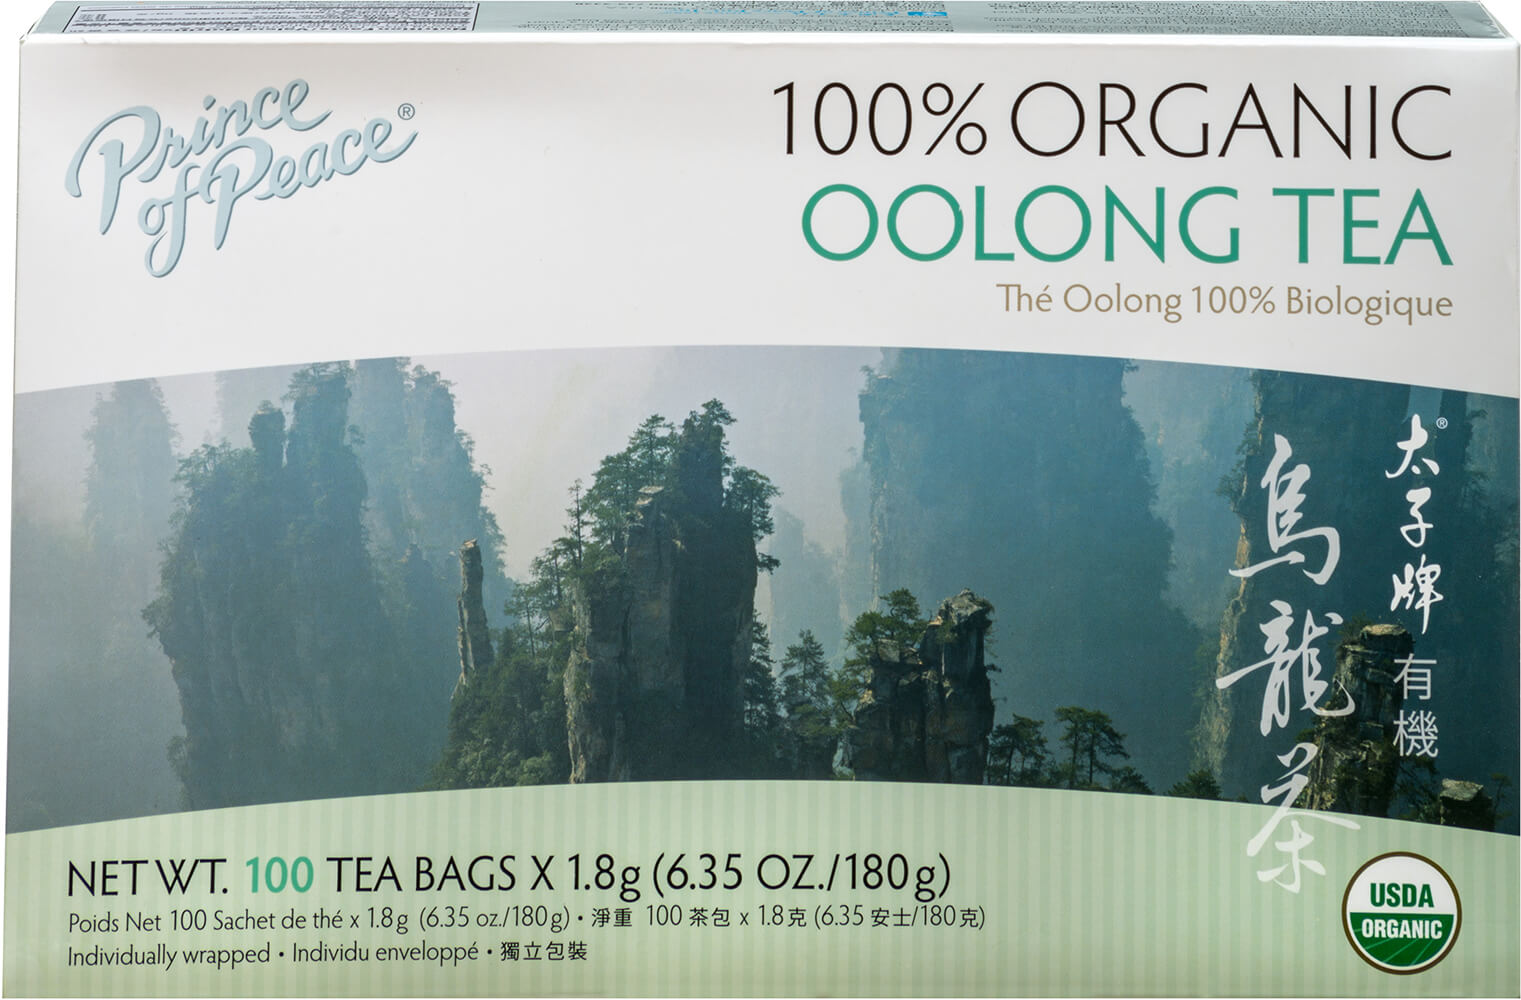 100% Organic Oolong Tea Thumbnail Alternate Bottle View